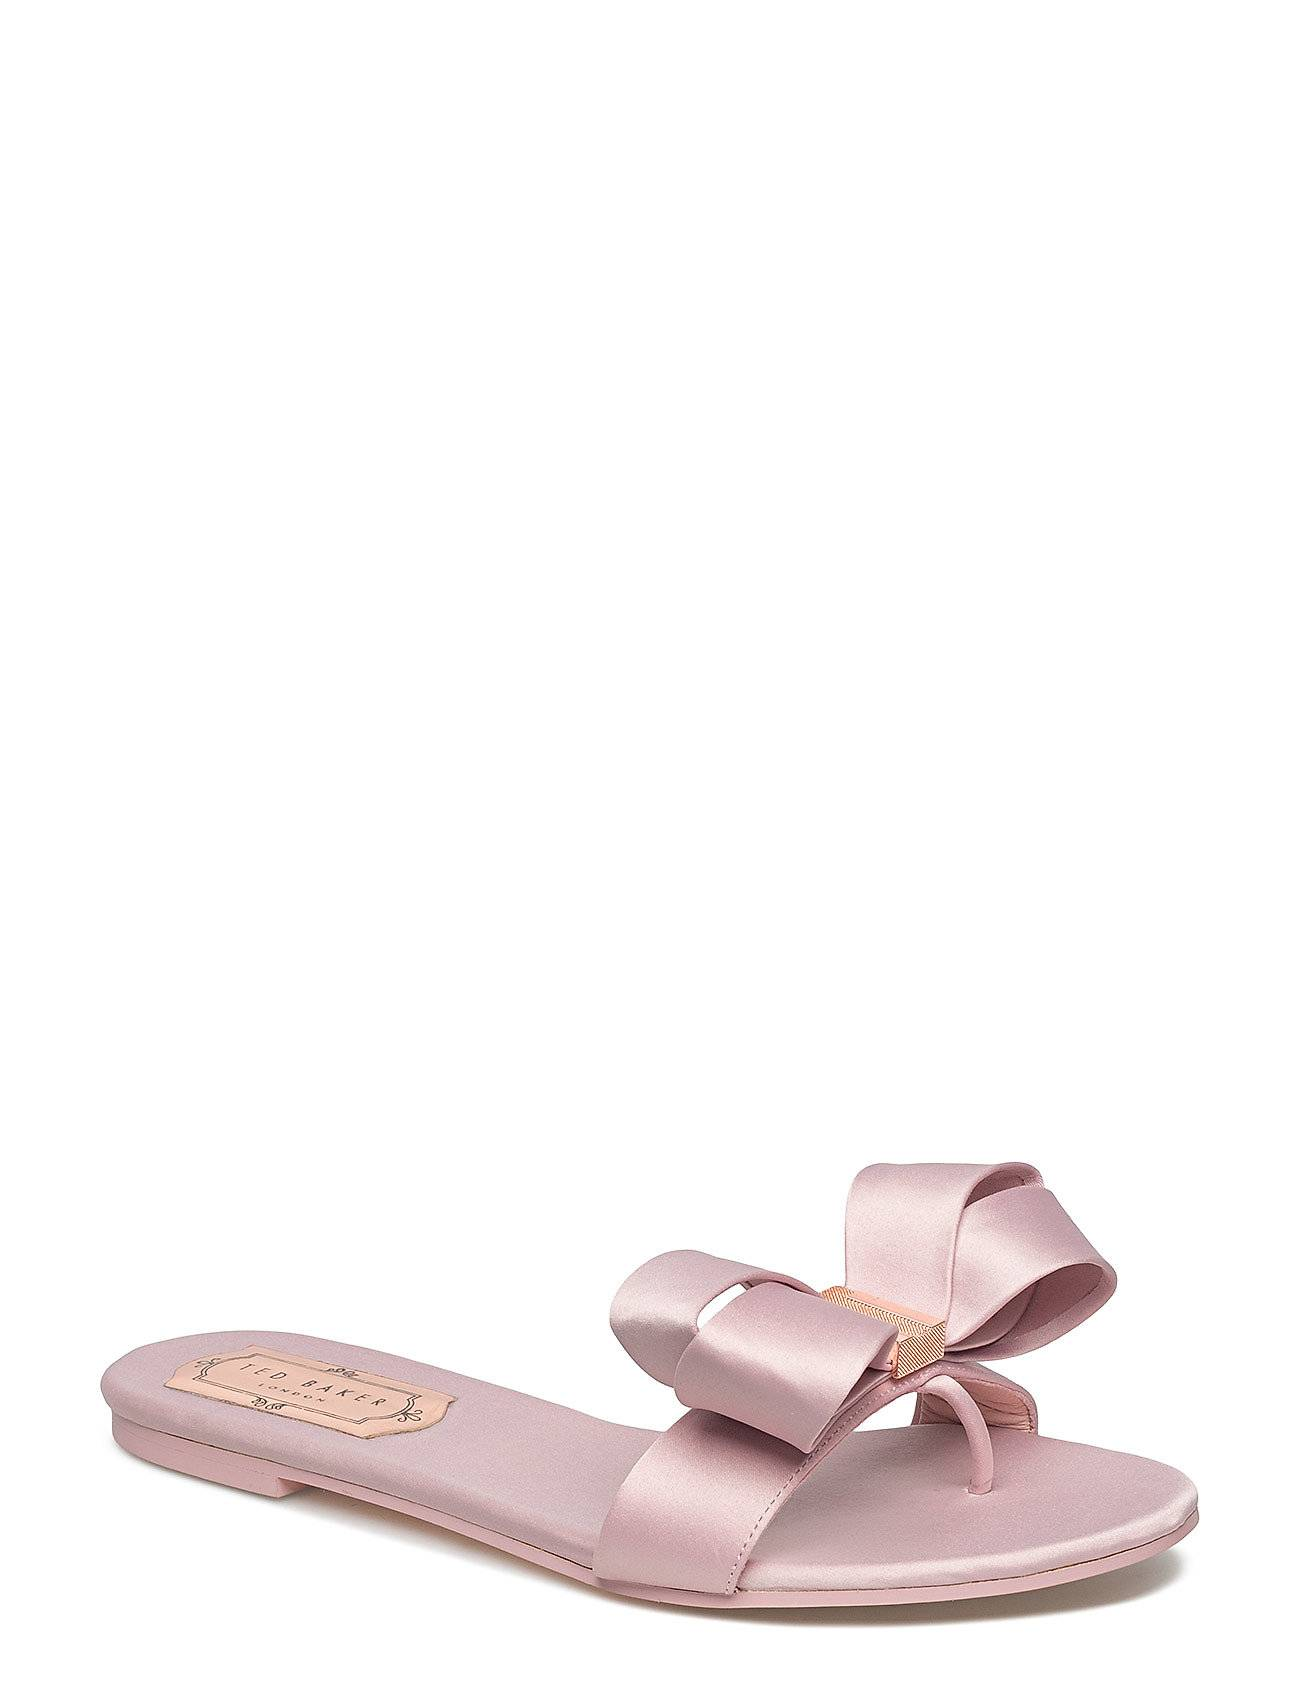 Ted Baker Beauita